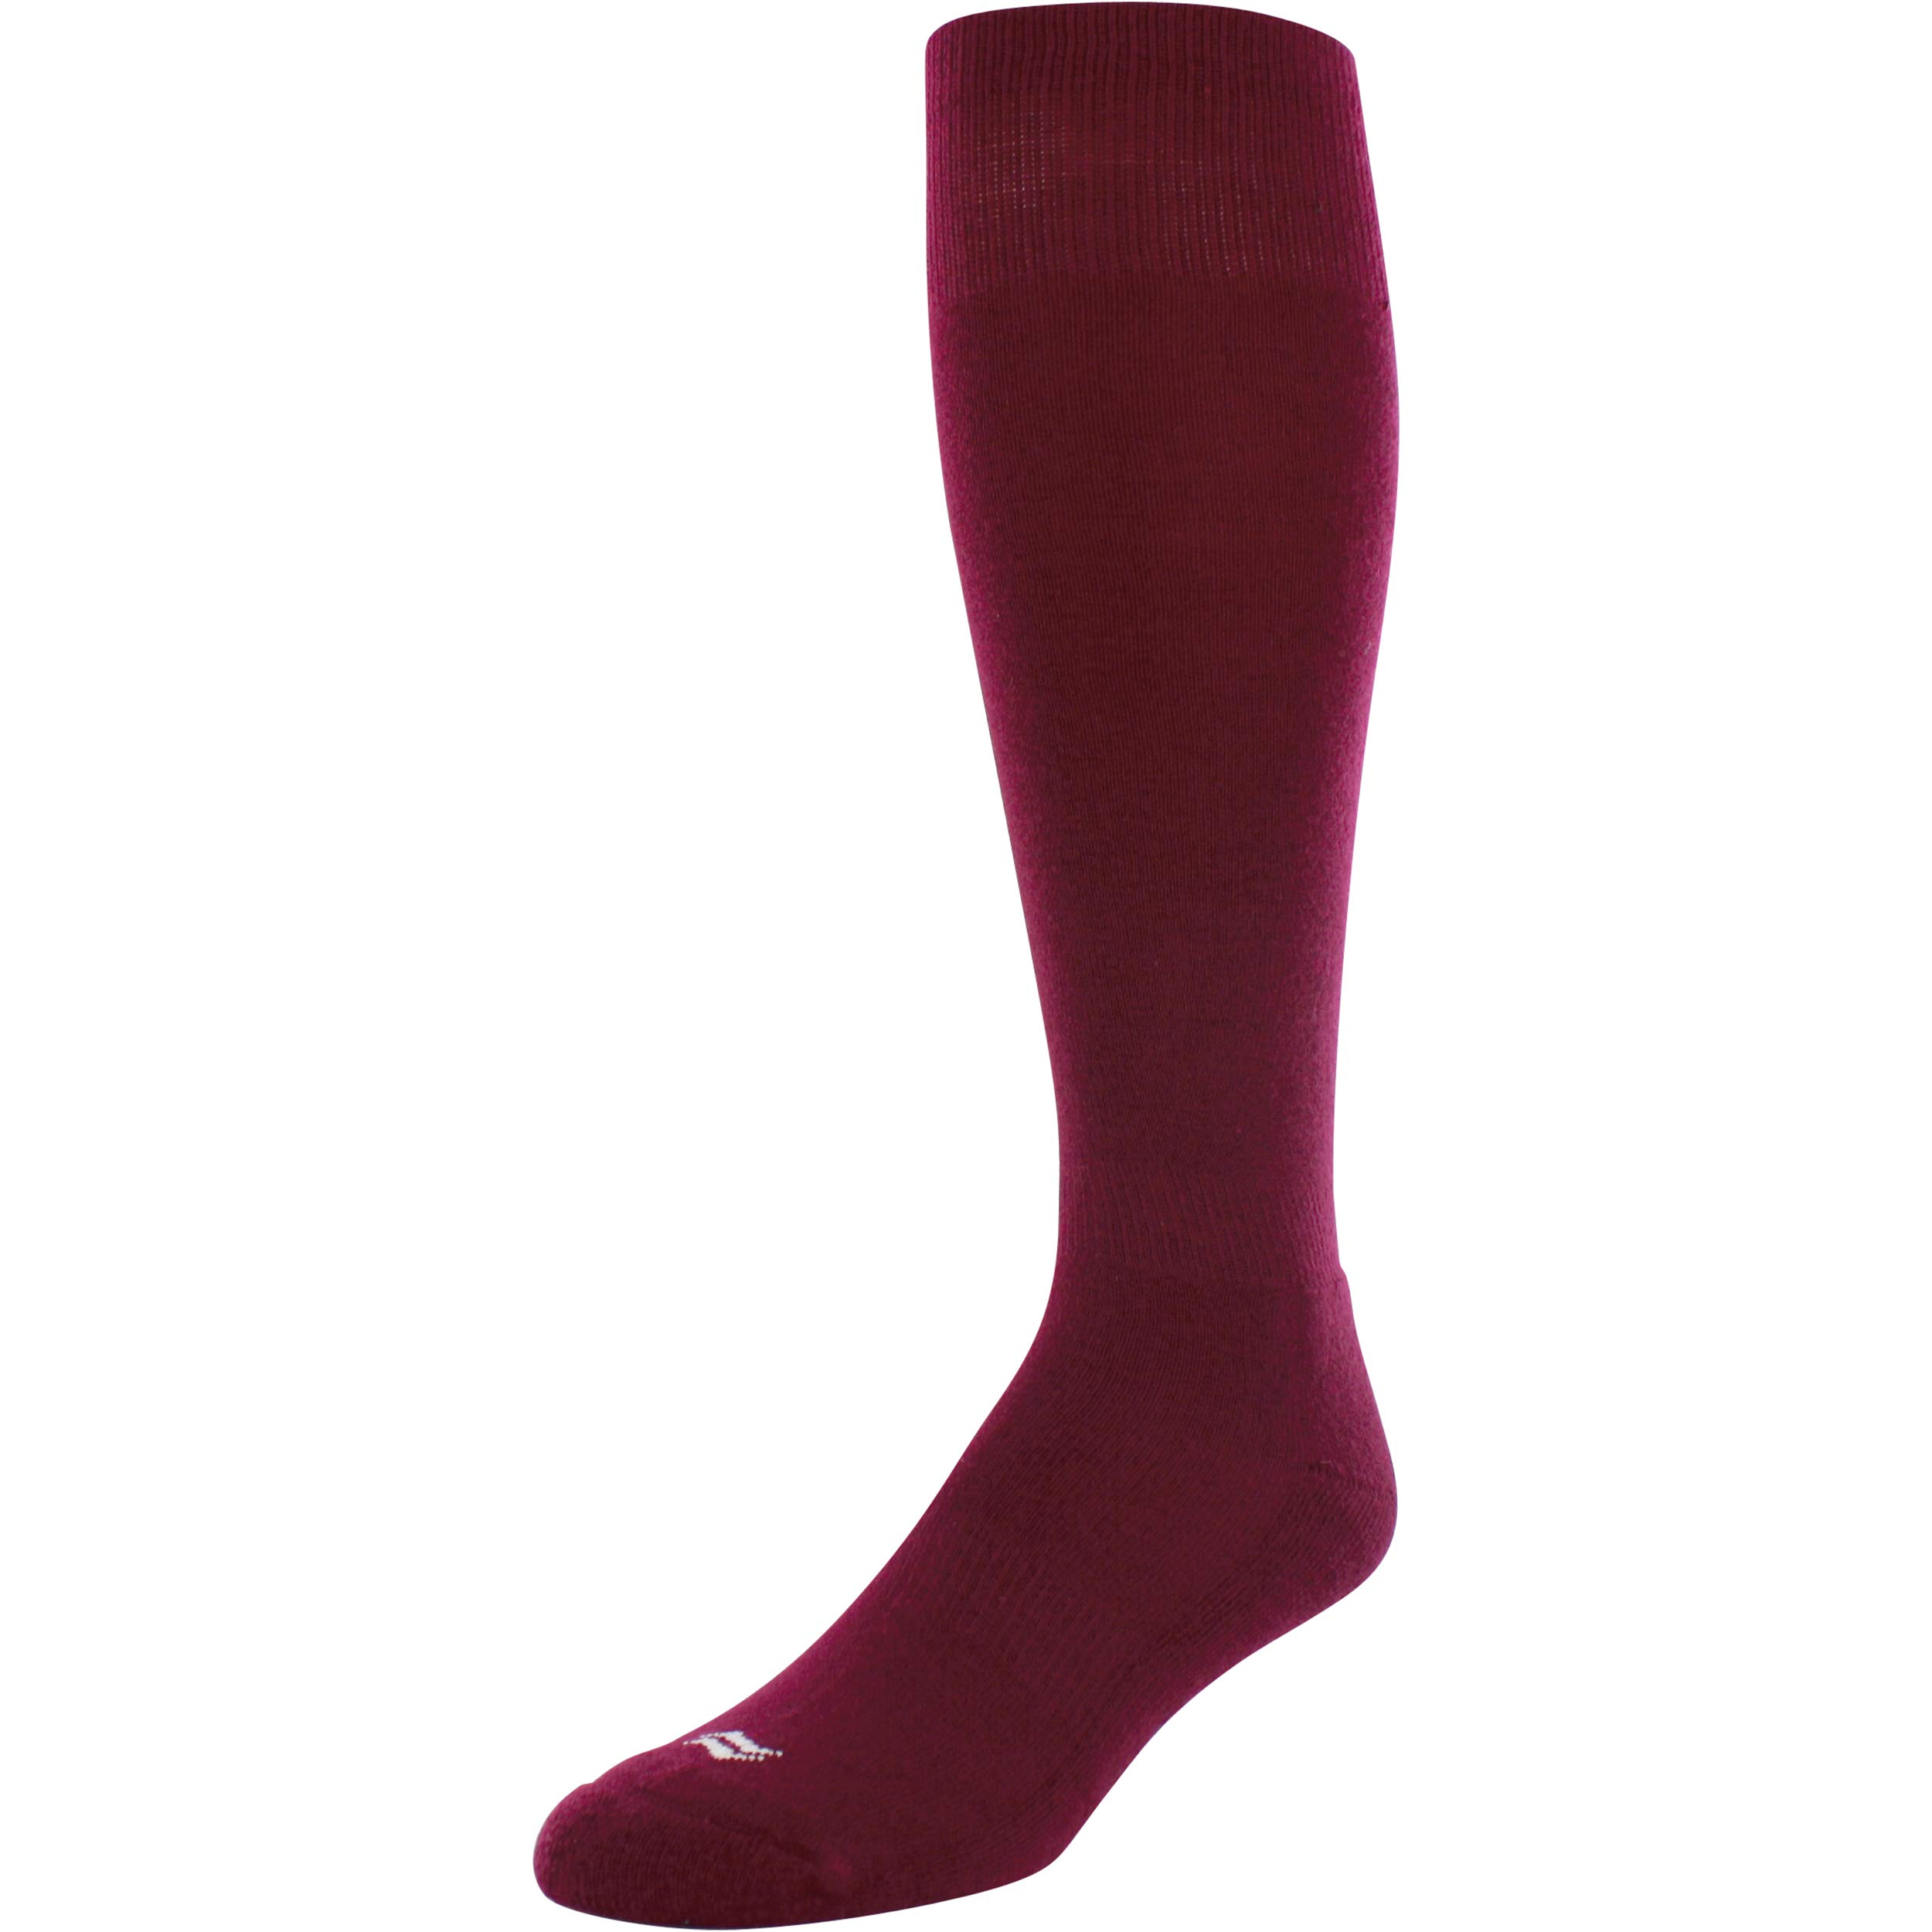 Sof Sole Baseball Performance Socks 2 Pack (Mens Large 10-12.5,, Maroon) by Sof Sole